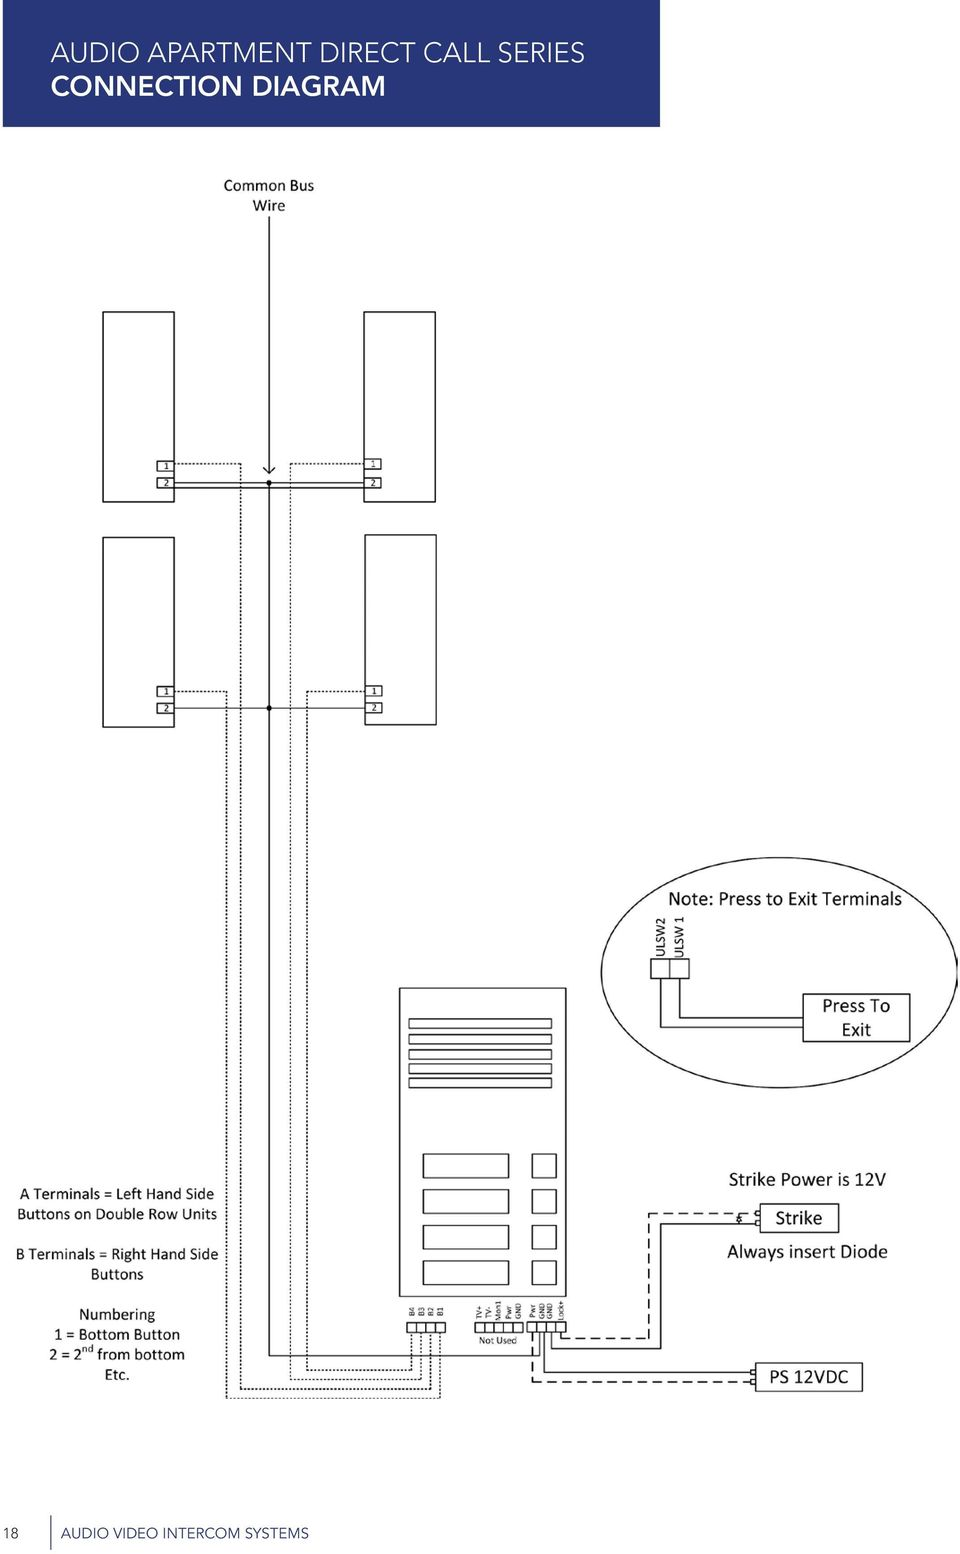 Audio video intercom systems security safety at your finger tips connection diagram 18 ccuart Choice Image